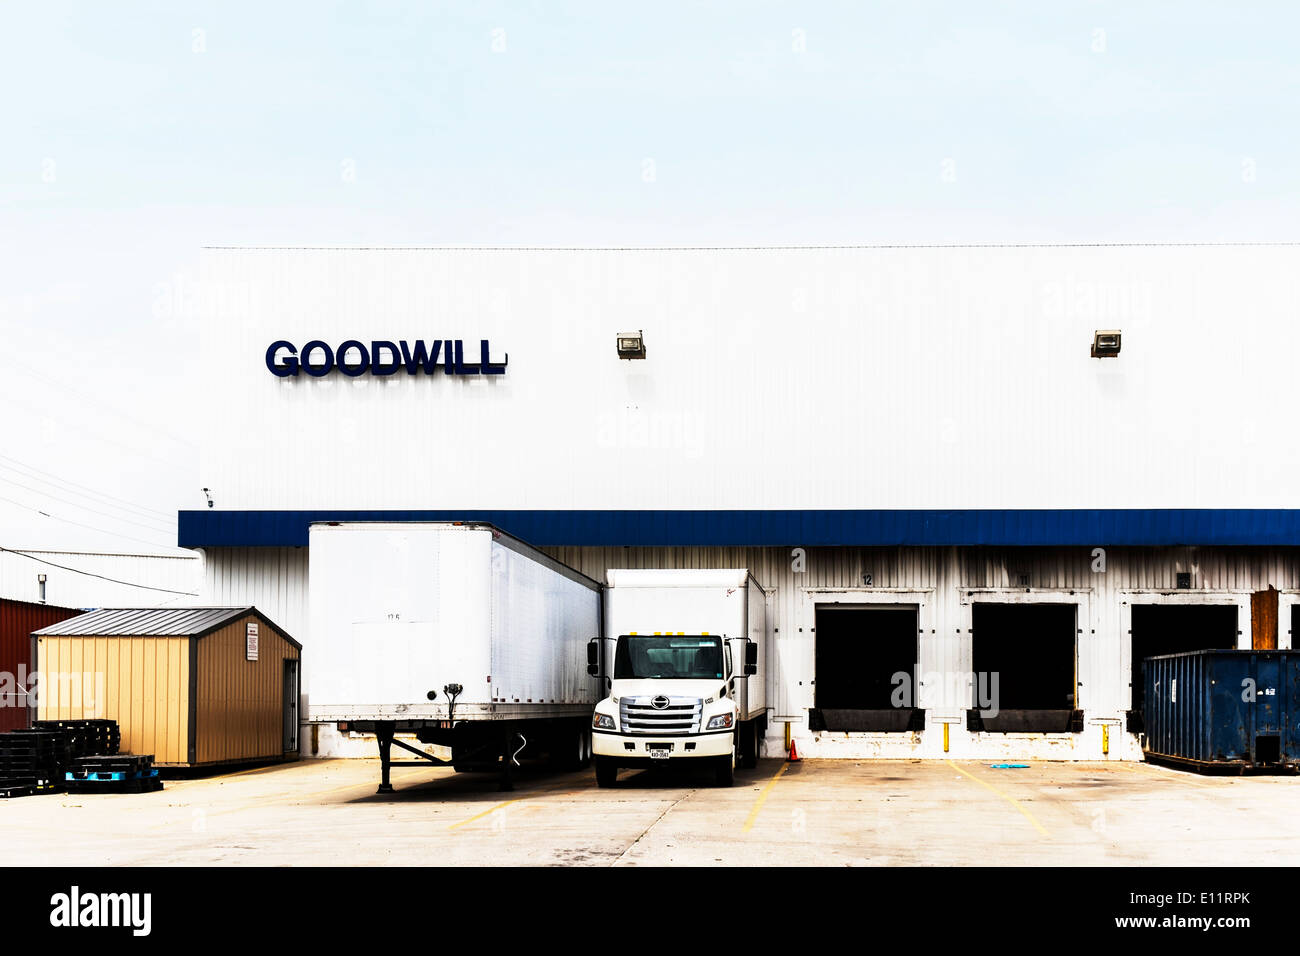 The loading docks, building and trucks of a Goodwill charitable organization in Oklalhoma City, Oklahoma, USA. - Stock Image